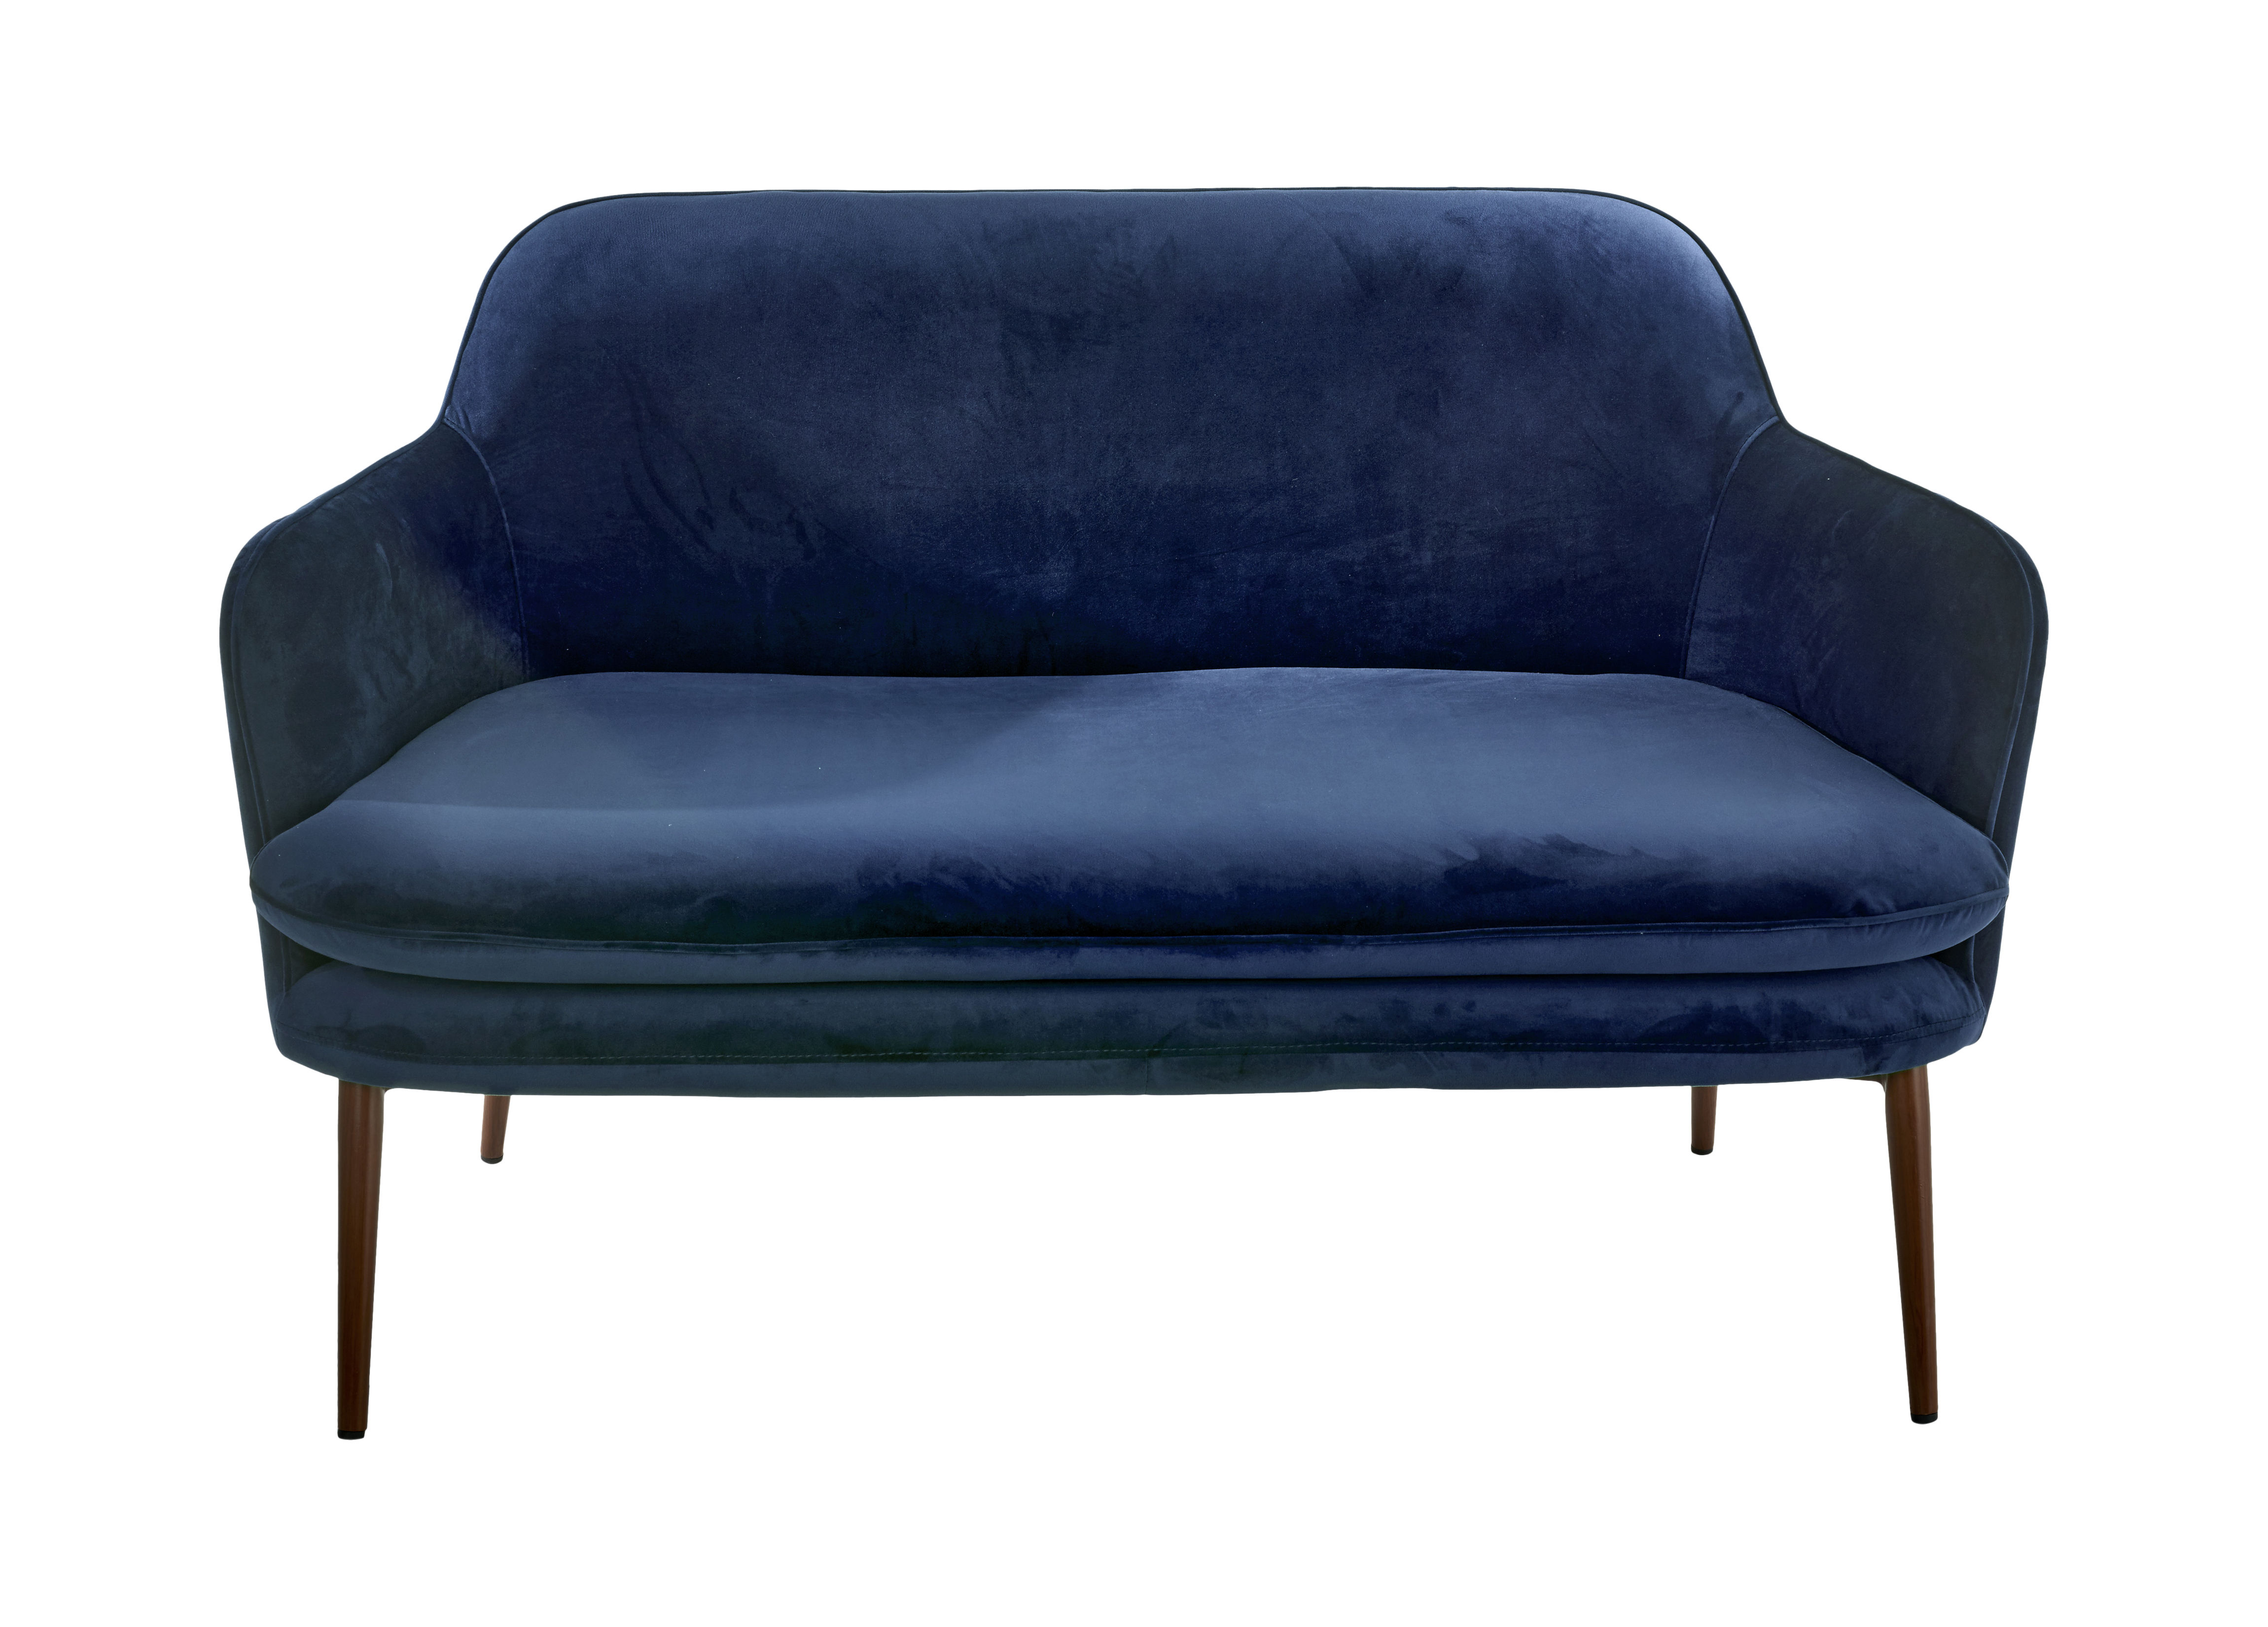 Charmy Straight sofa L 128 cm Blue velvet by Pols Potten